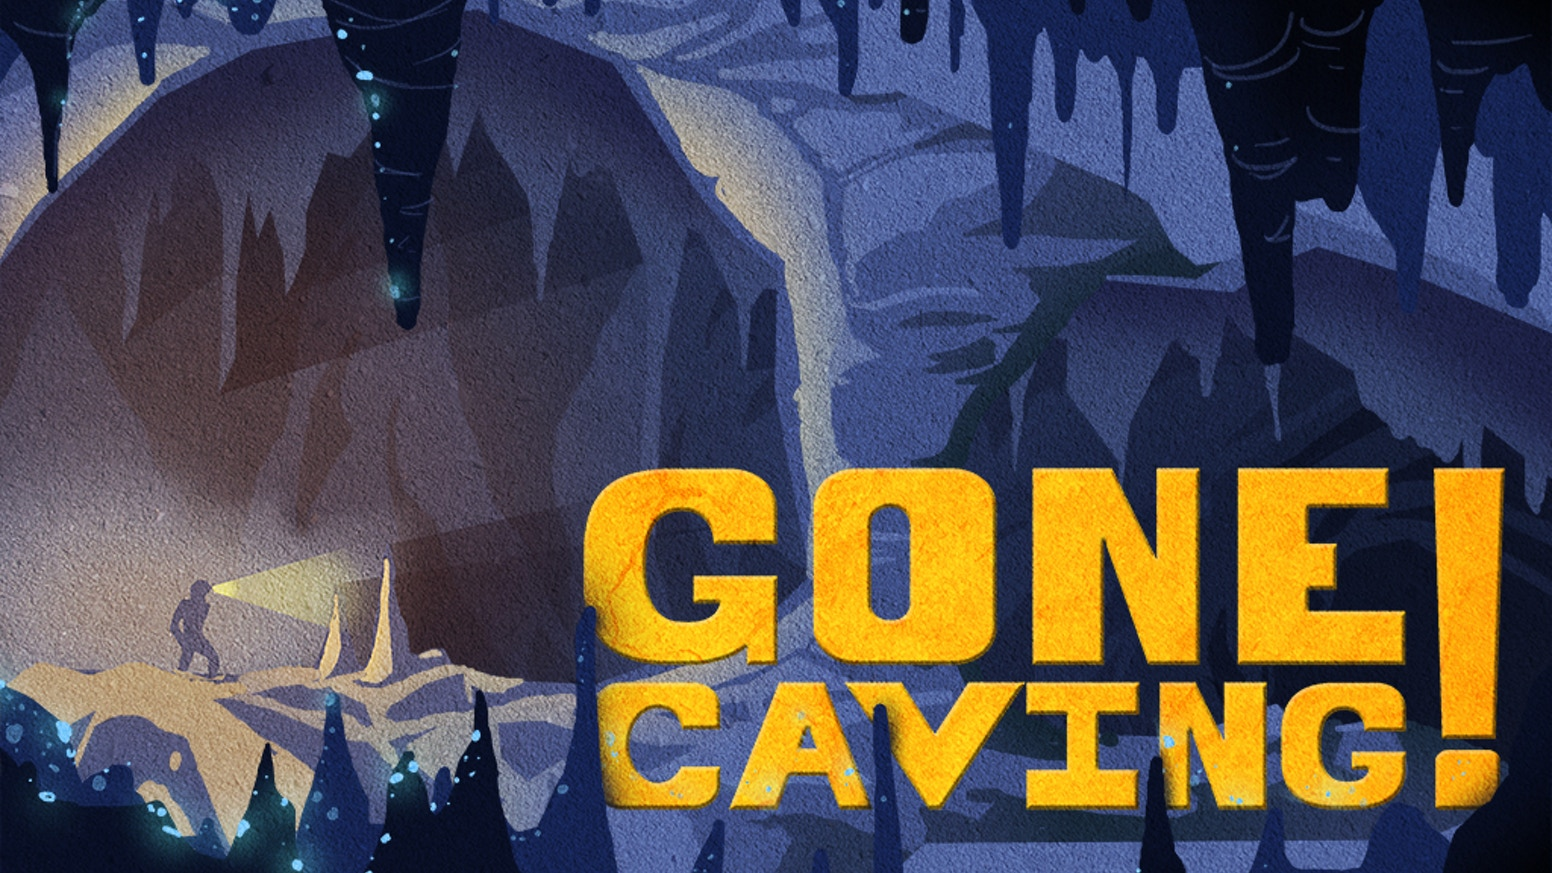 You and your friends explore a cave together and help protect caves for future generations.